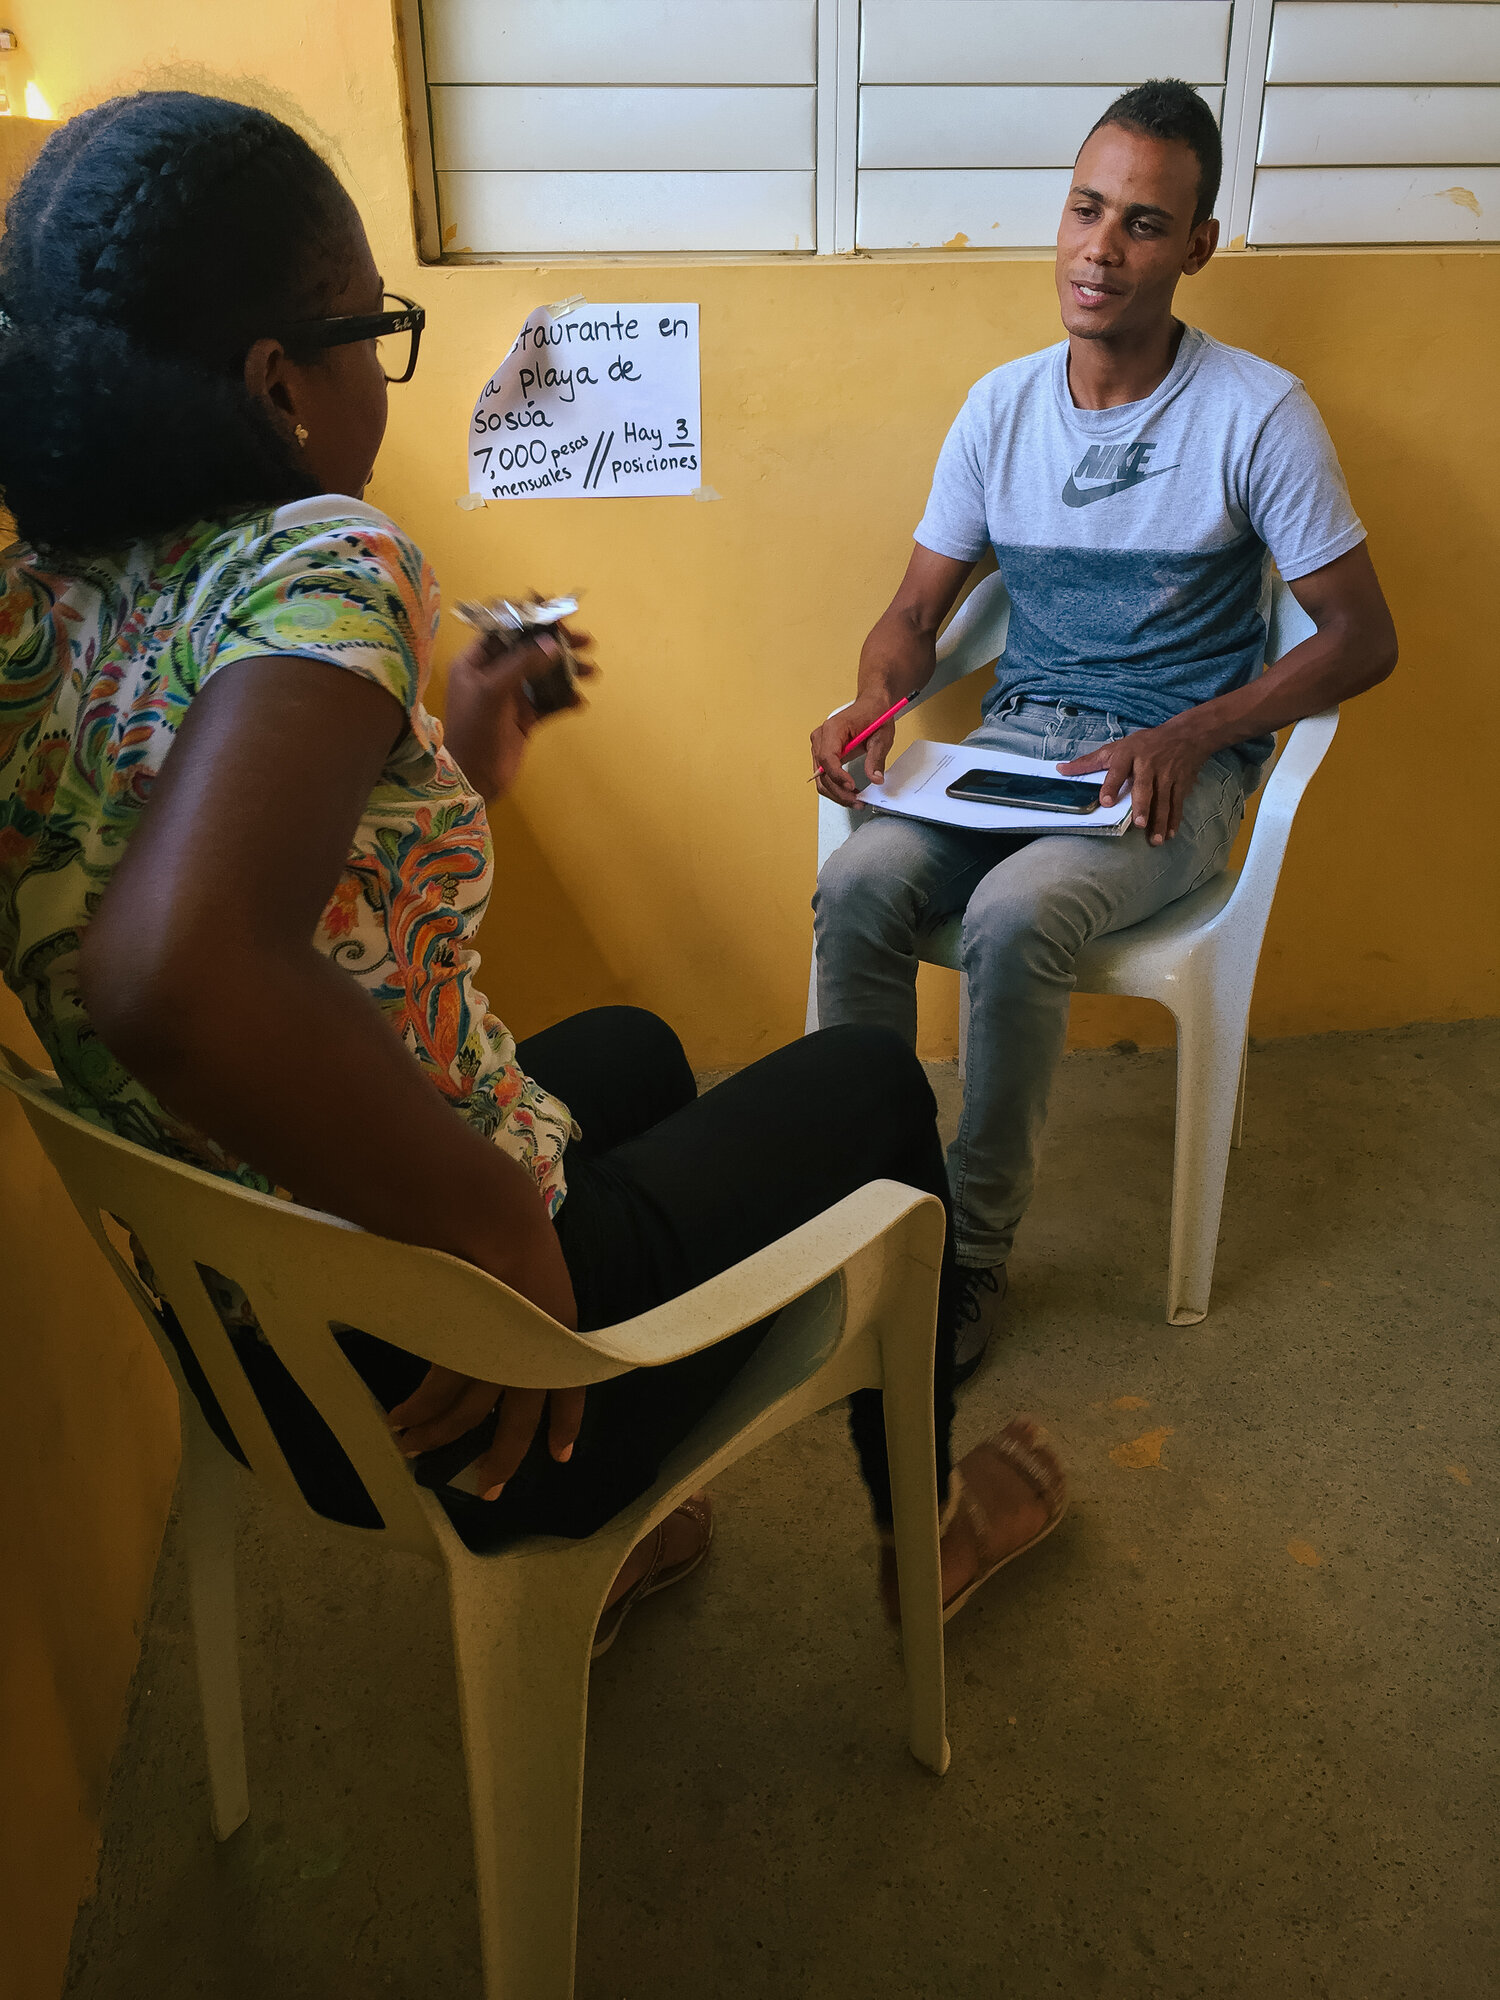 The students had to interview for potential jobs, with our local staff serving as prospective employers! Here a girl is interviewing for a job at a restaurant in Sosua, which would earn her 7,000 pesos a month (about $140).